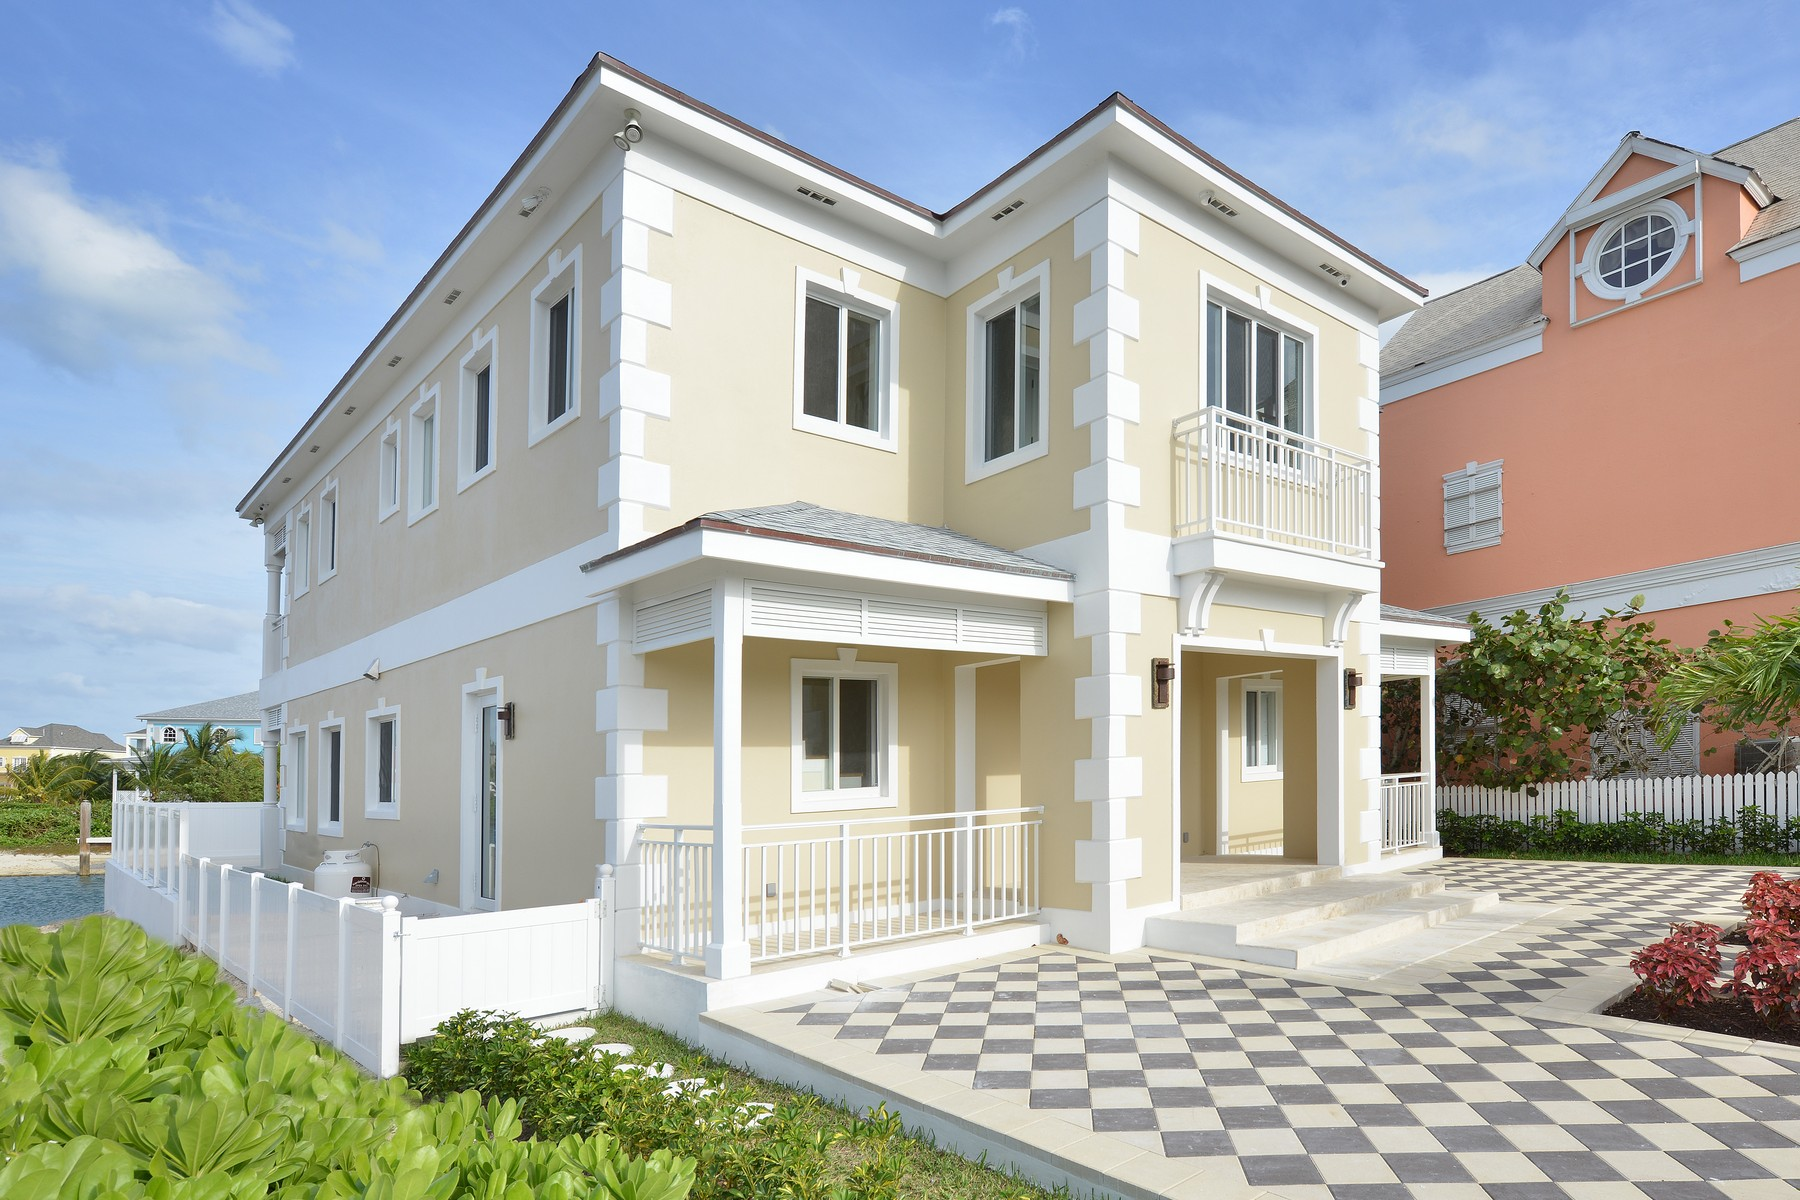 Single Family Home for Sale at Kingfisher Island, Sandyport Sandyport, Cable Beach, Nassau And Paradise Island Bahamas